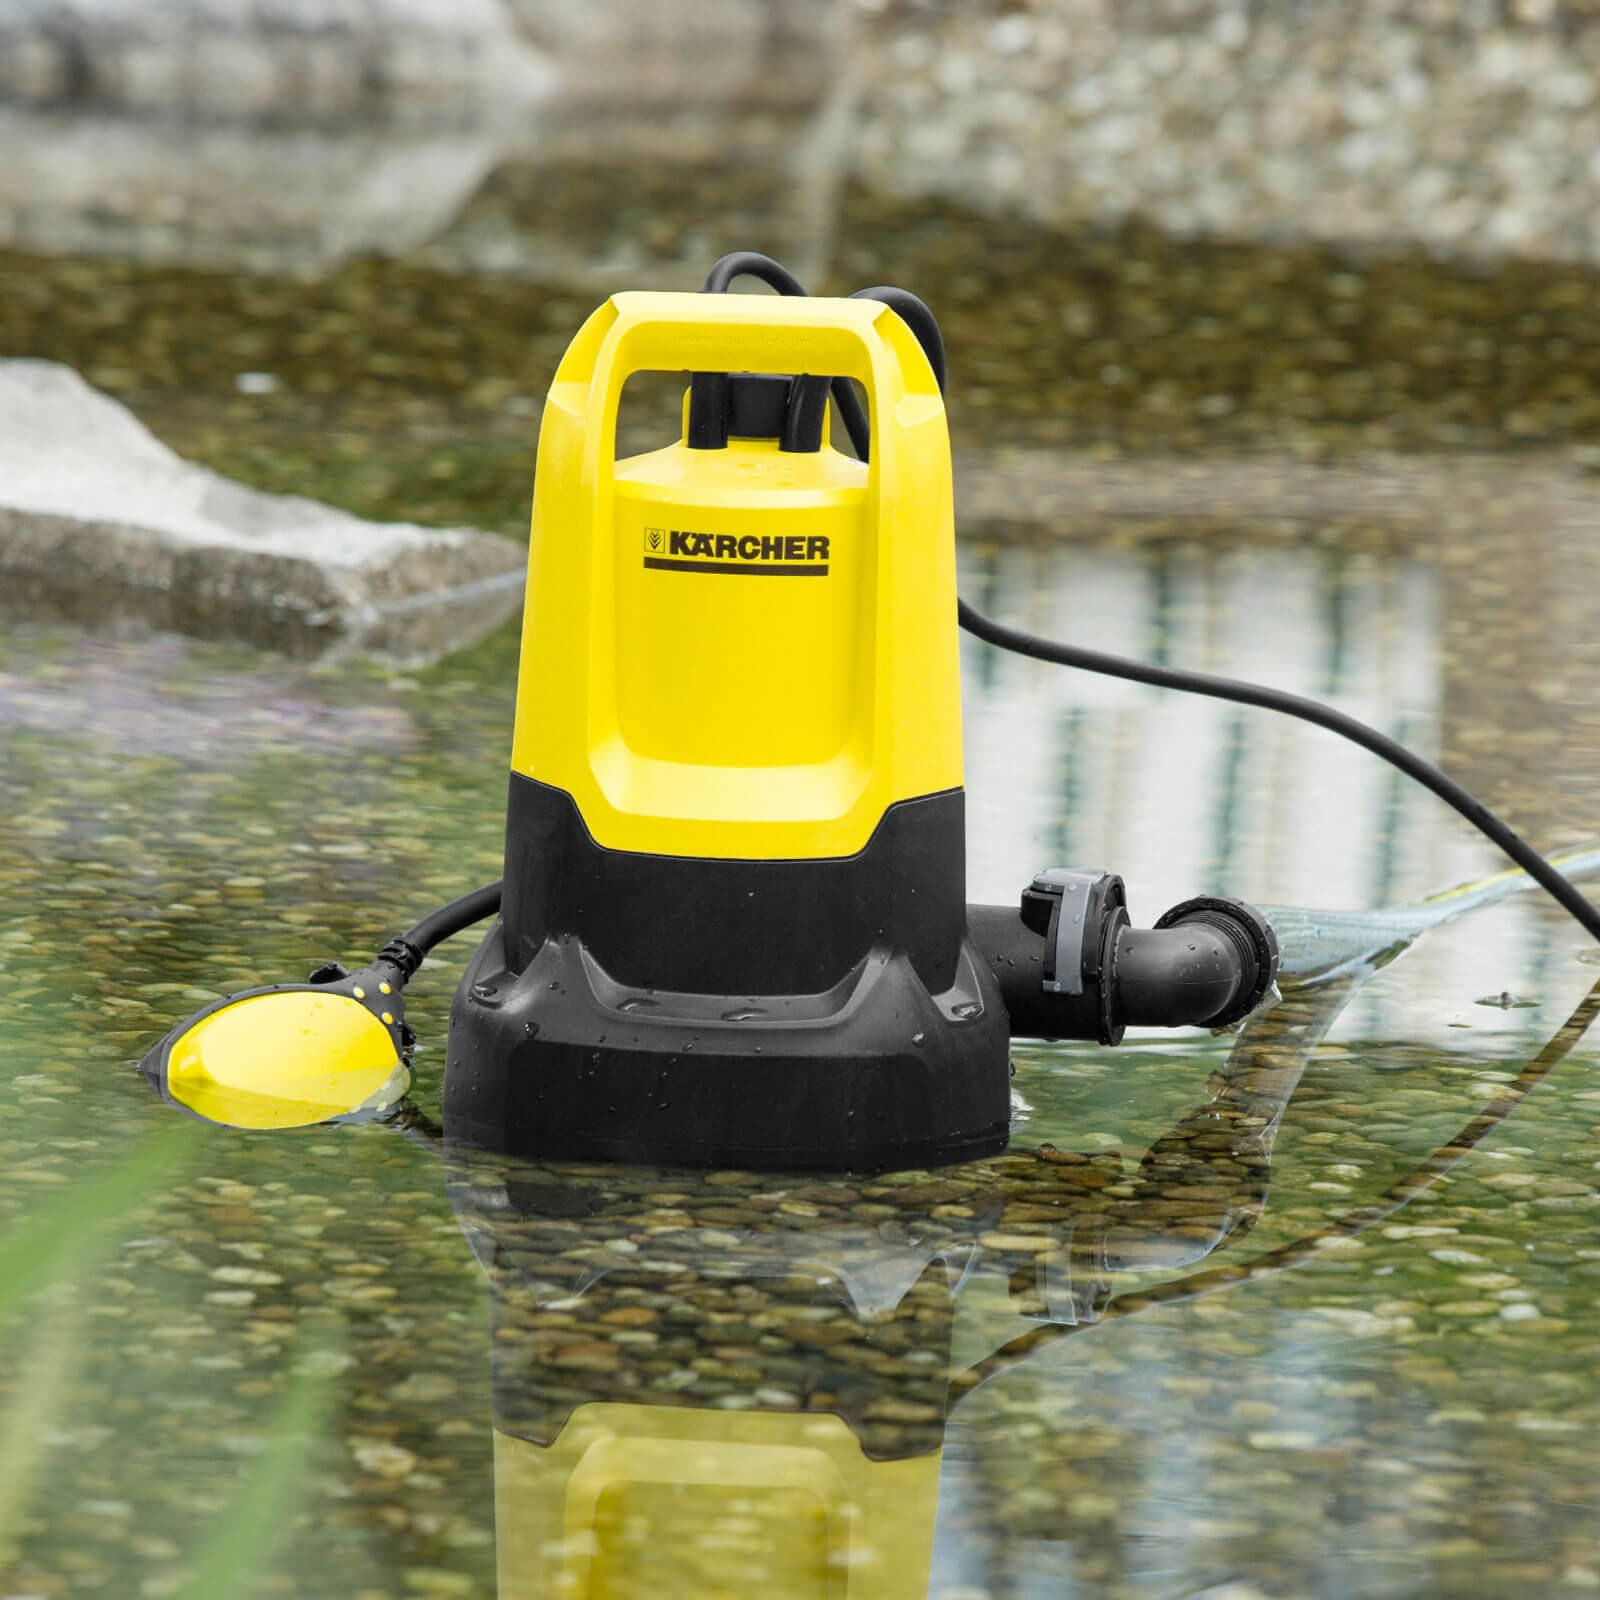 Karcher Sp 5 Submersible Dirty Water Pump Drainage 3 Dirt